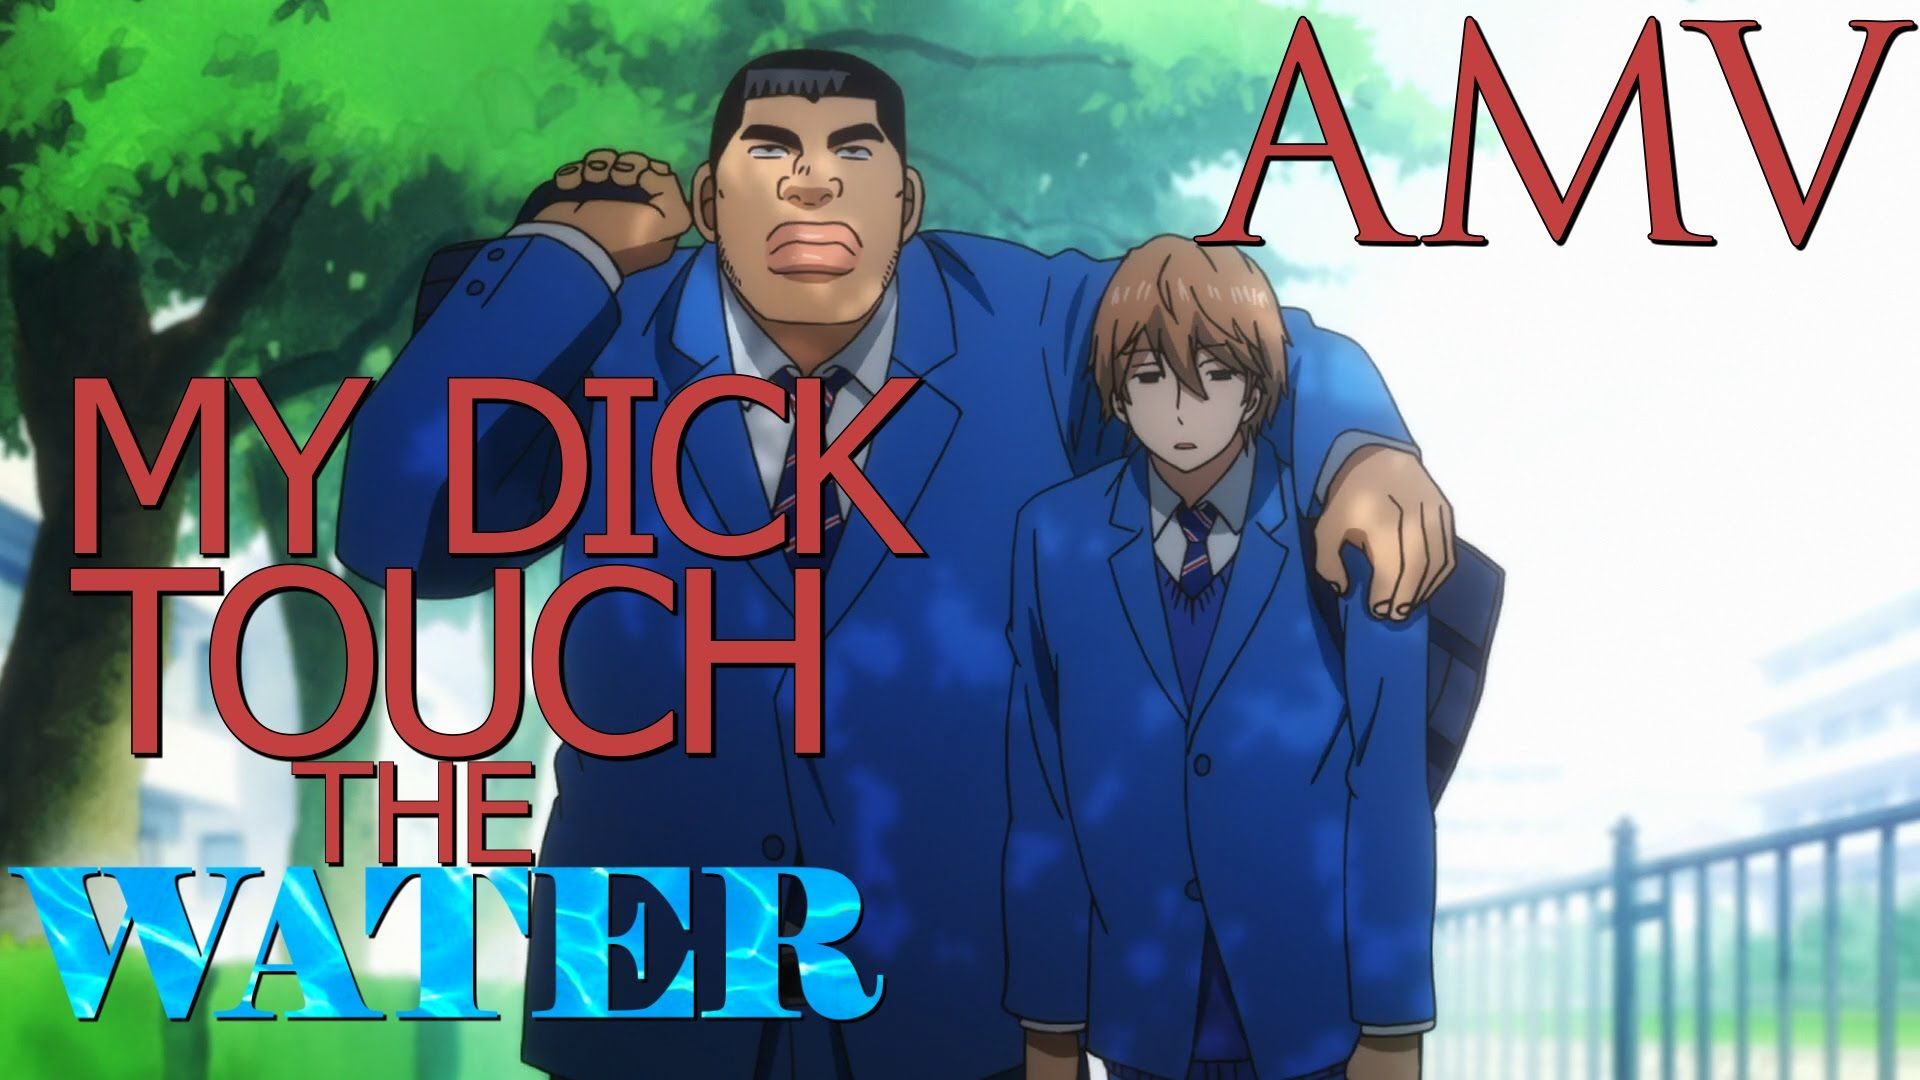 AMV: My Dick Touch the Water